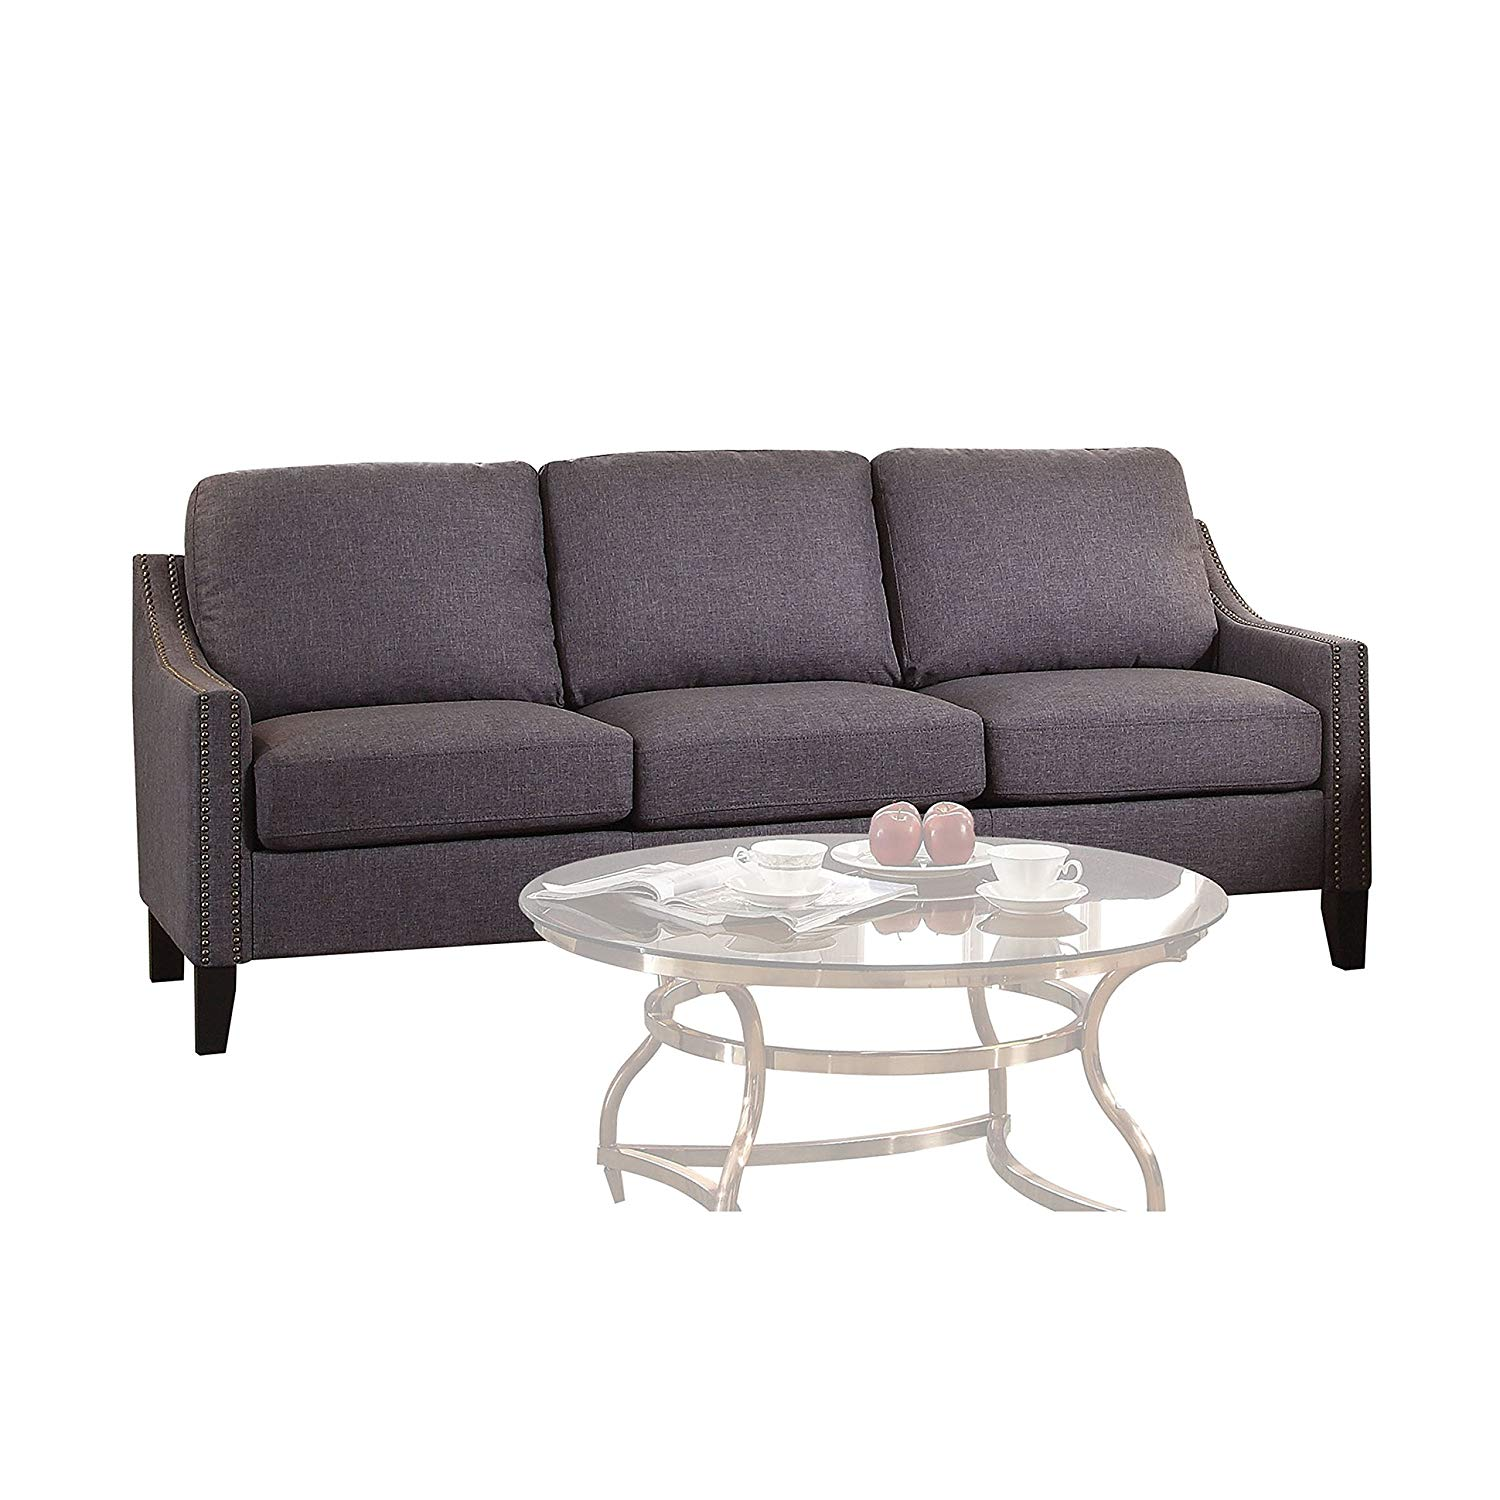 Get Quotations · Contemporary Stylish Sofa, Loose Back And Seat Cushion  With Thick Padding, Wood Frame,